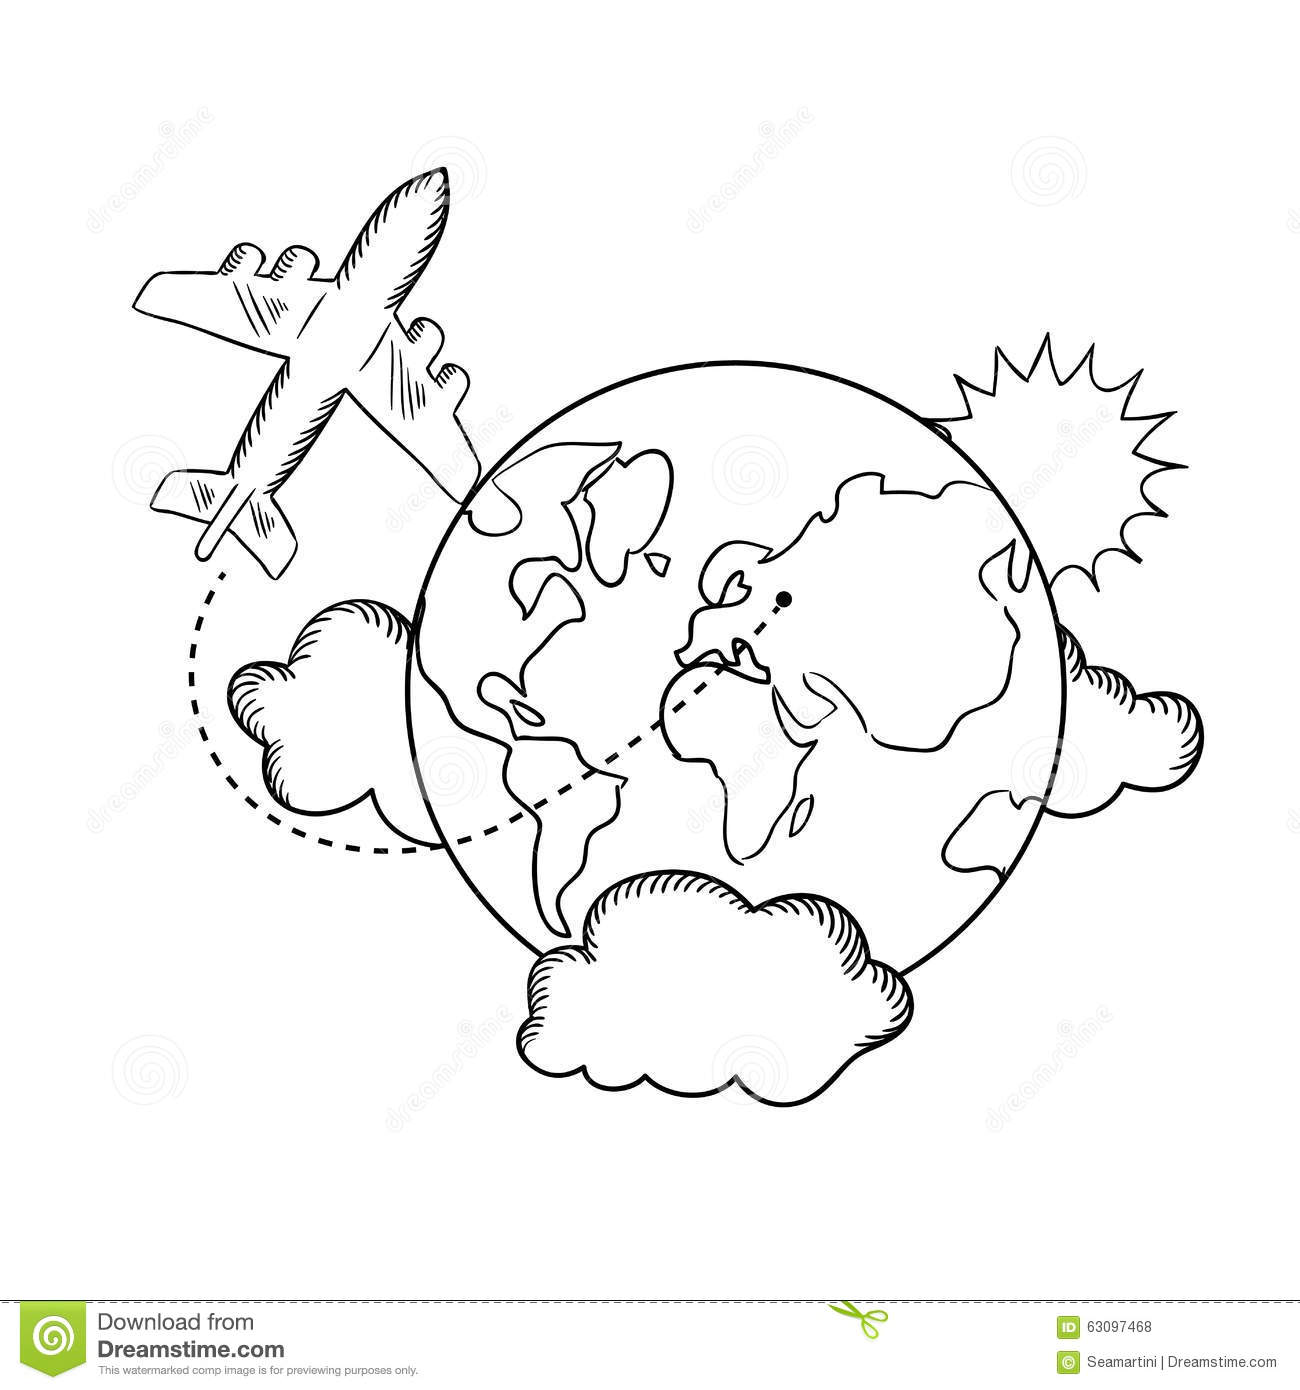 map and comp tattoo with Stock Illustration Air Travel Around Earth Sketch Flying Airplane Globe Clouds Sun Concept Style Image63097468 on Vintage Nautical  pass Old Map Vector 27066182 moreover Modern Globe With Desktop Stand Sketch Gm496229436 78416875 also Kate Spade Quote Desktop Wallpaper also Royalty Free Stock Photography Vintage Items Ancient Map  pass Spyglass Pocket Watch Lying Old Image30679037 as well Oud Ouderwetse Kompas Oud Kaart 11009338.